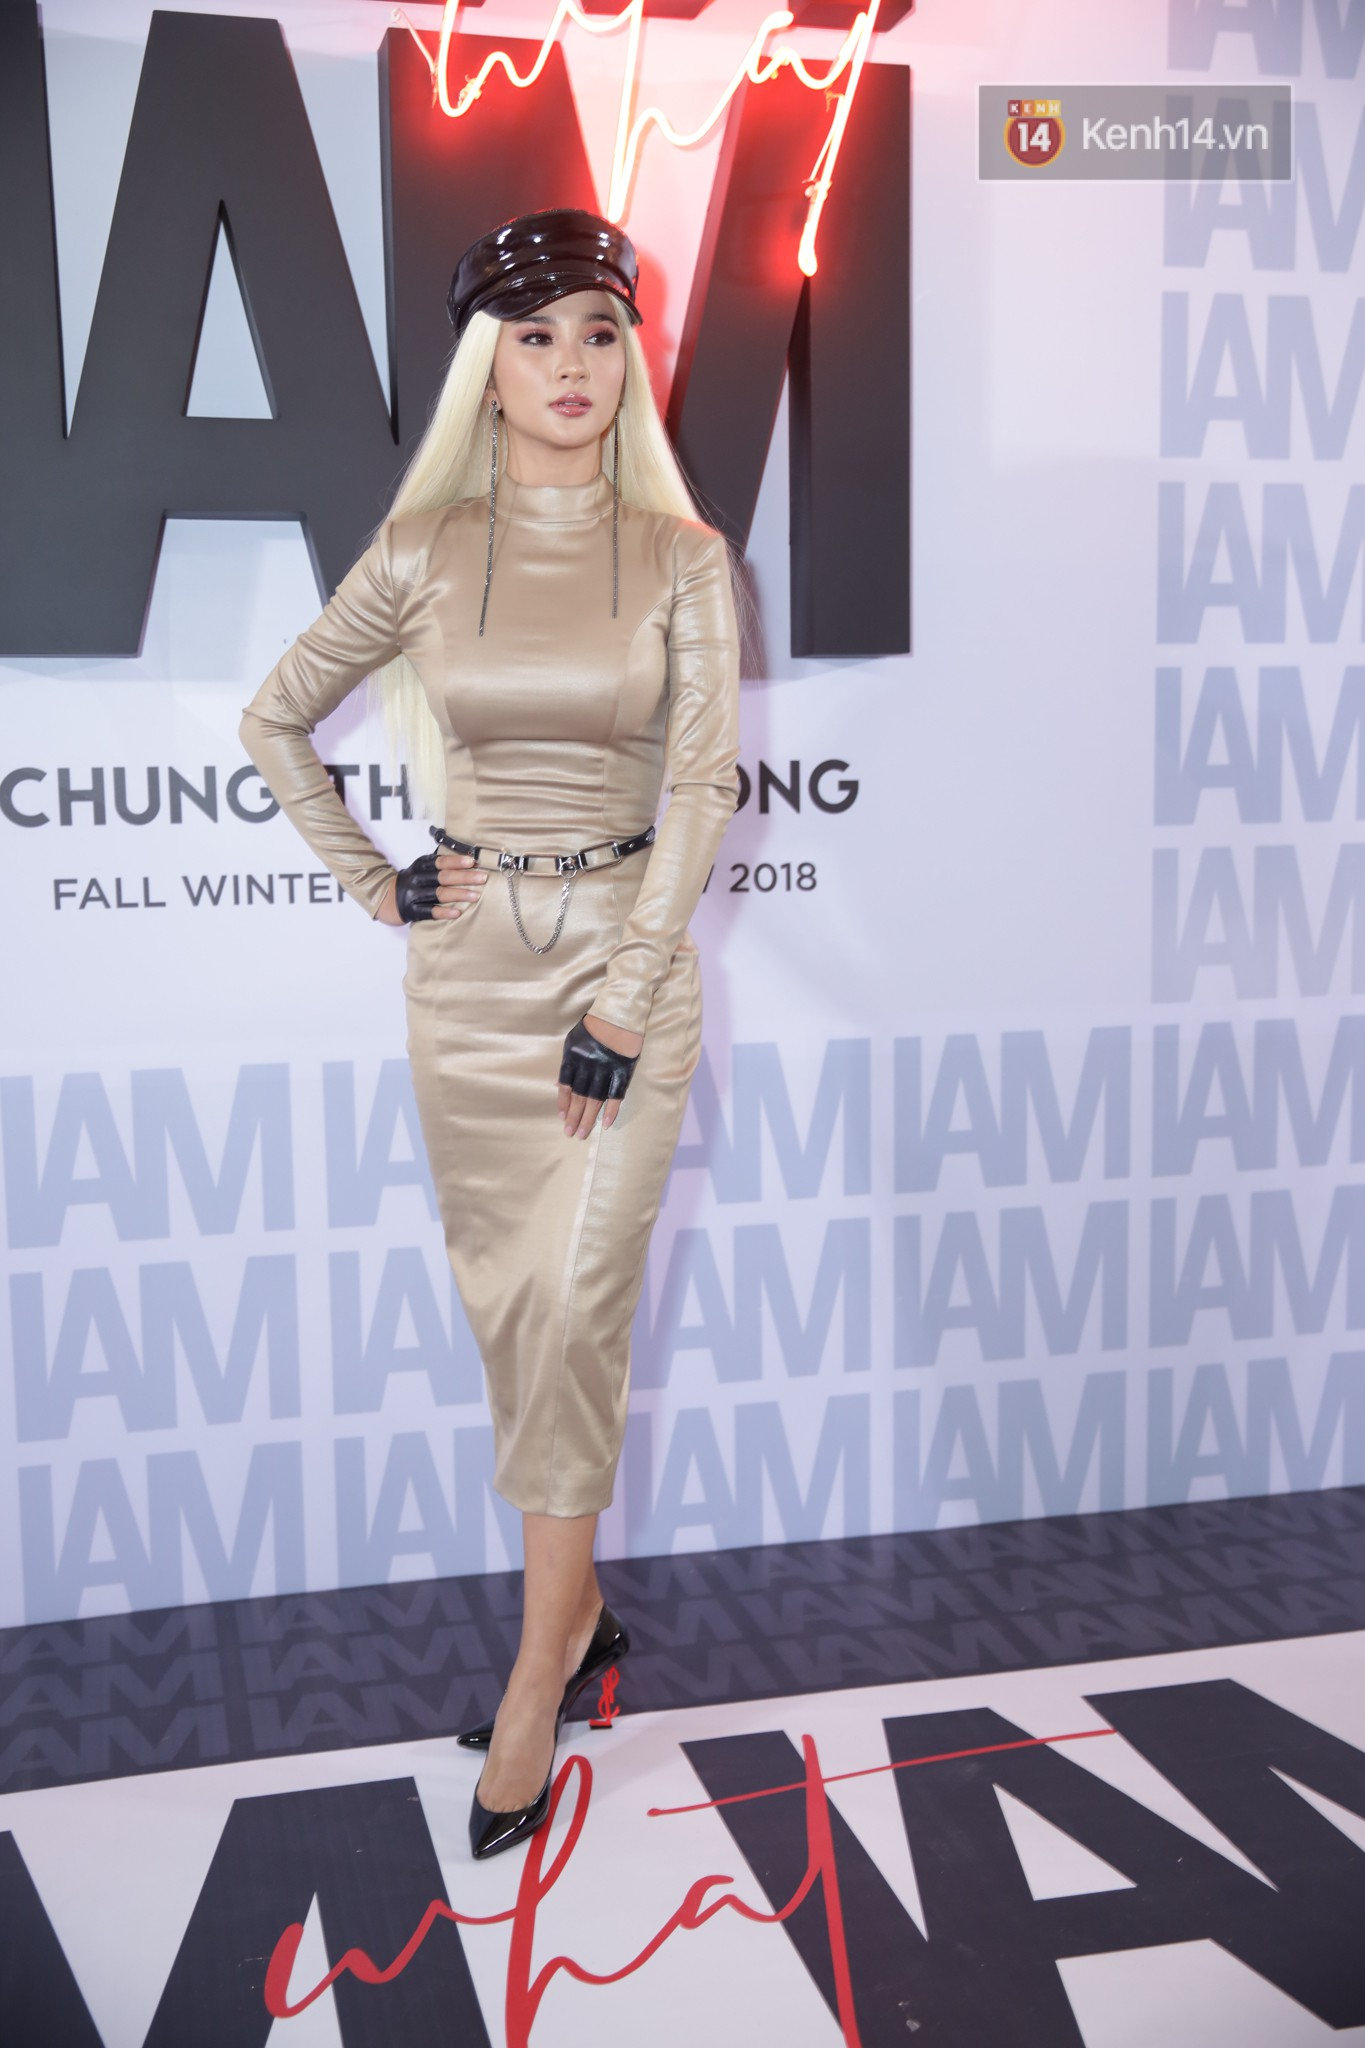 The red carpet Chung Thanh Phong show: it was able to test strange styles, as Quỳnh Anh Shyn caught the bird with rain - Photo 16.